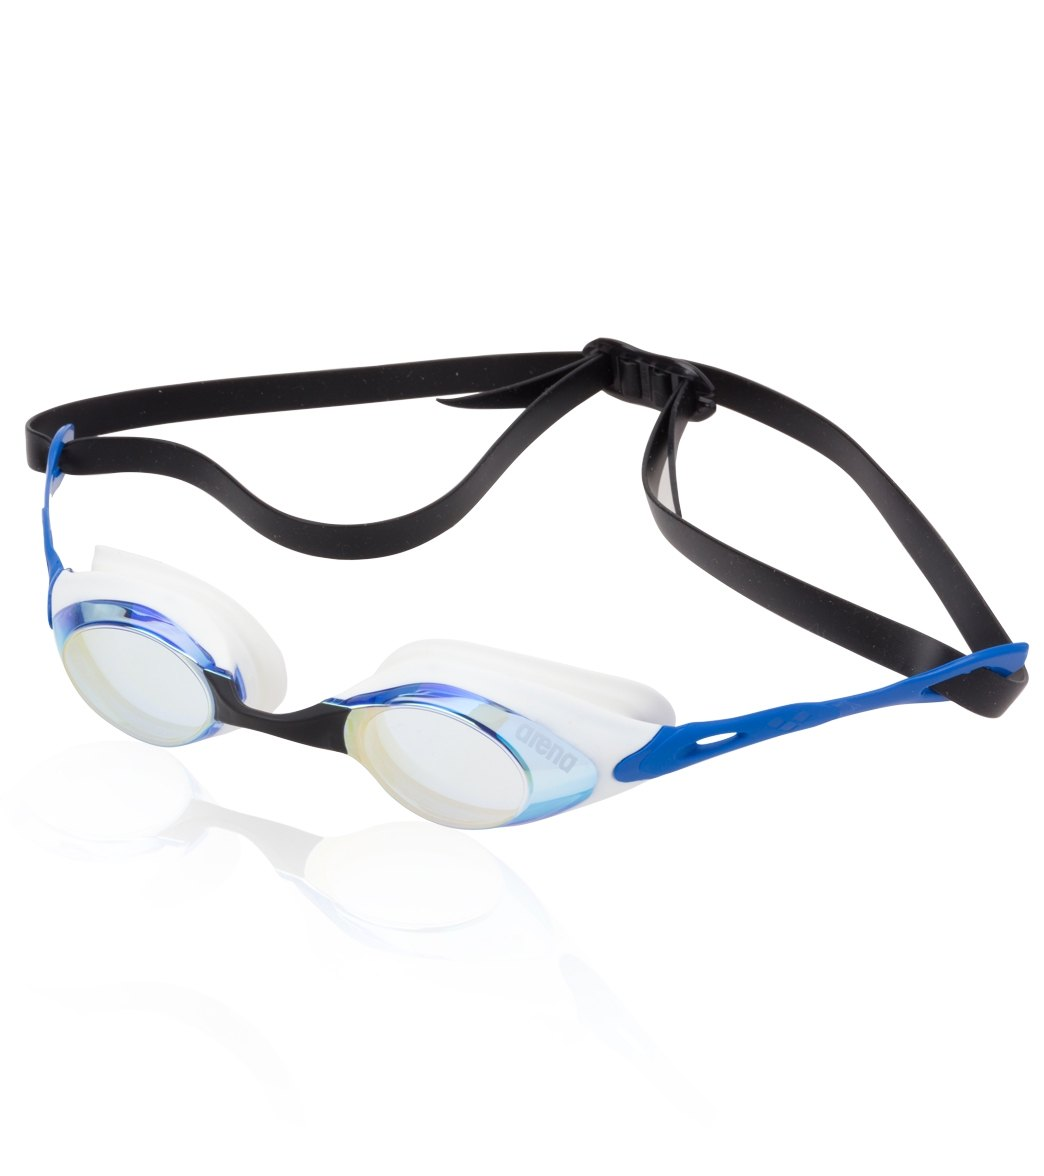 Arena Cobra Mirror Open Water Swimming Goggles